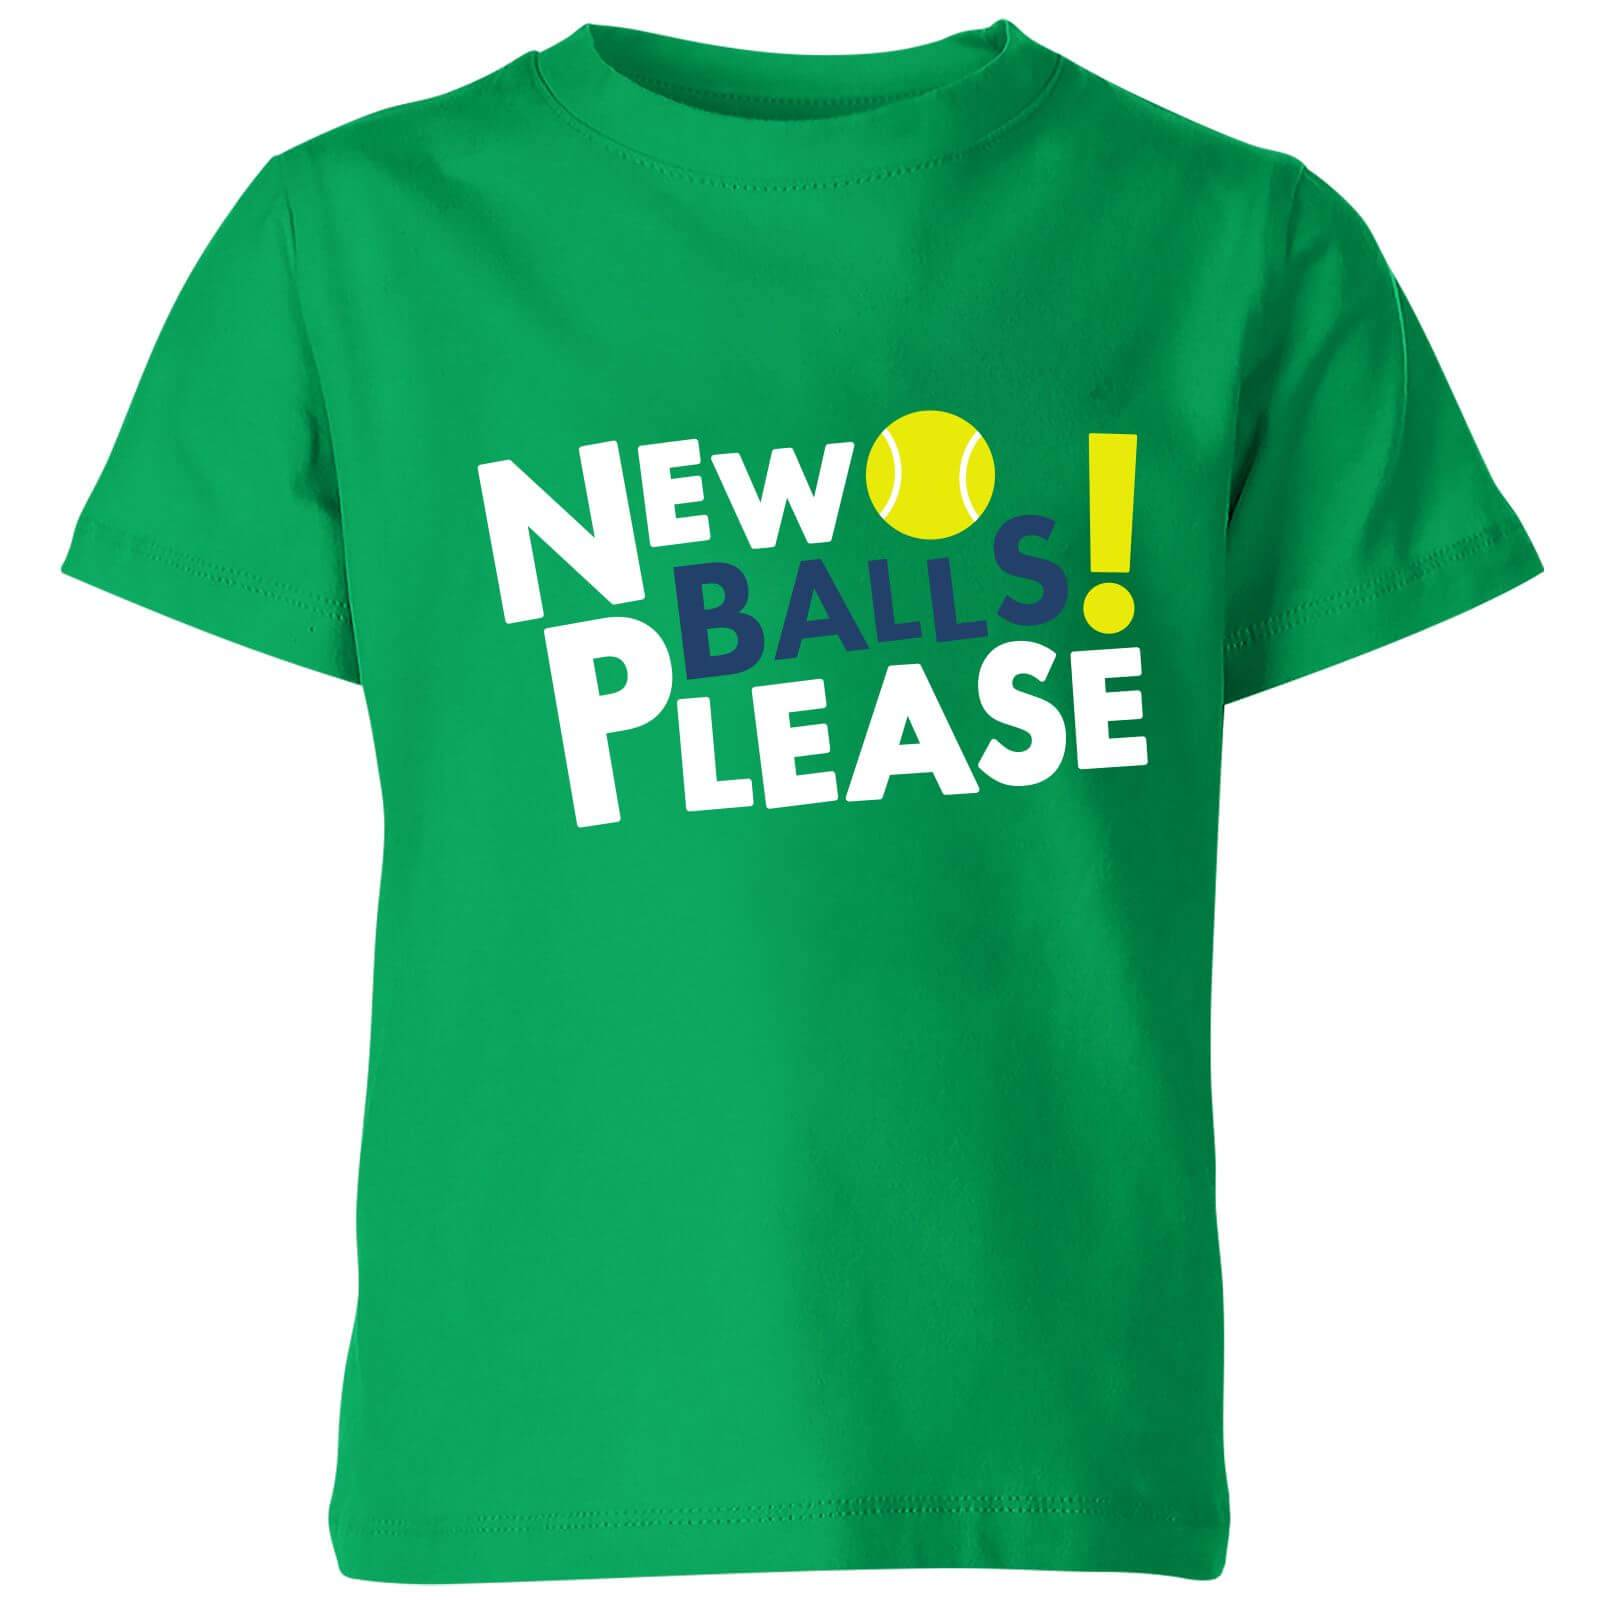 The Tennis Collection New Balls Please Kids' T-Shirt - Kelly Green - 7-8 Years - Kelly Green